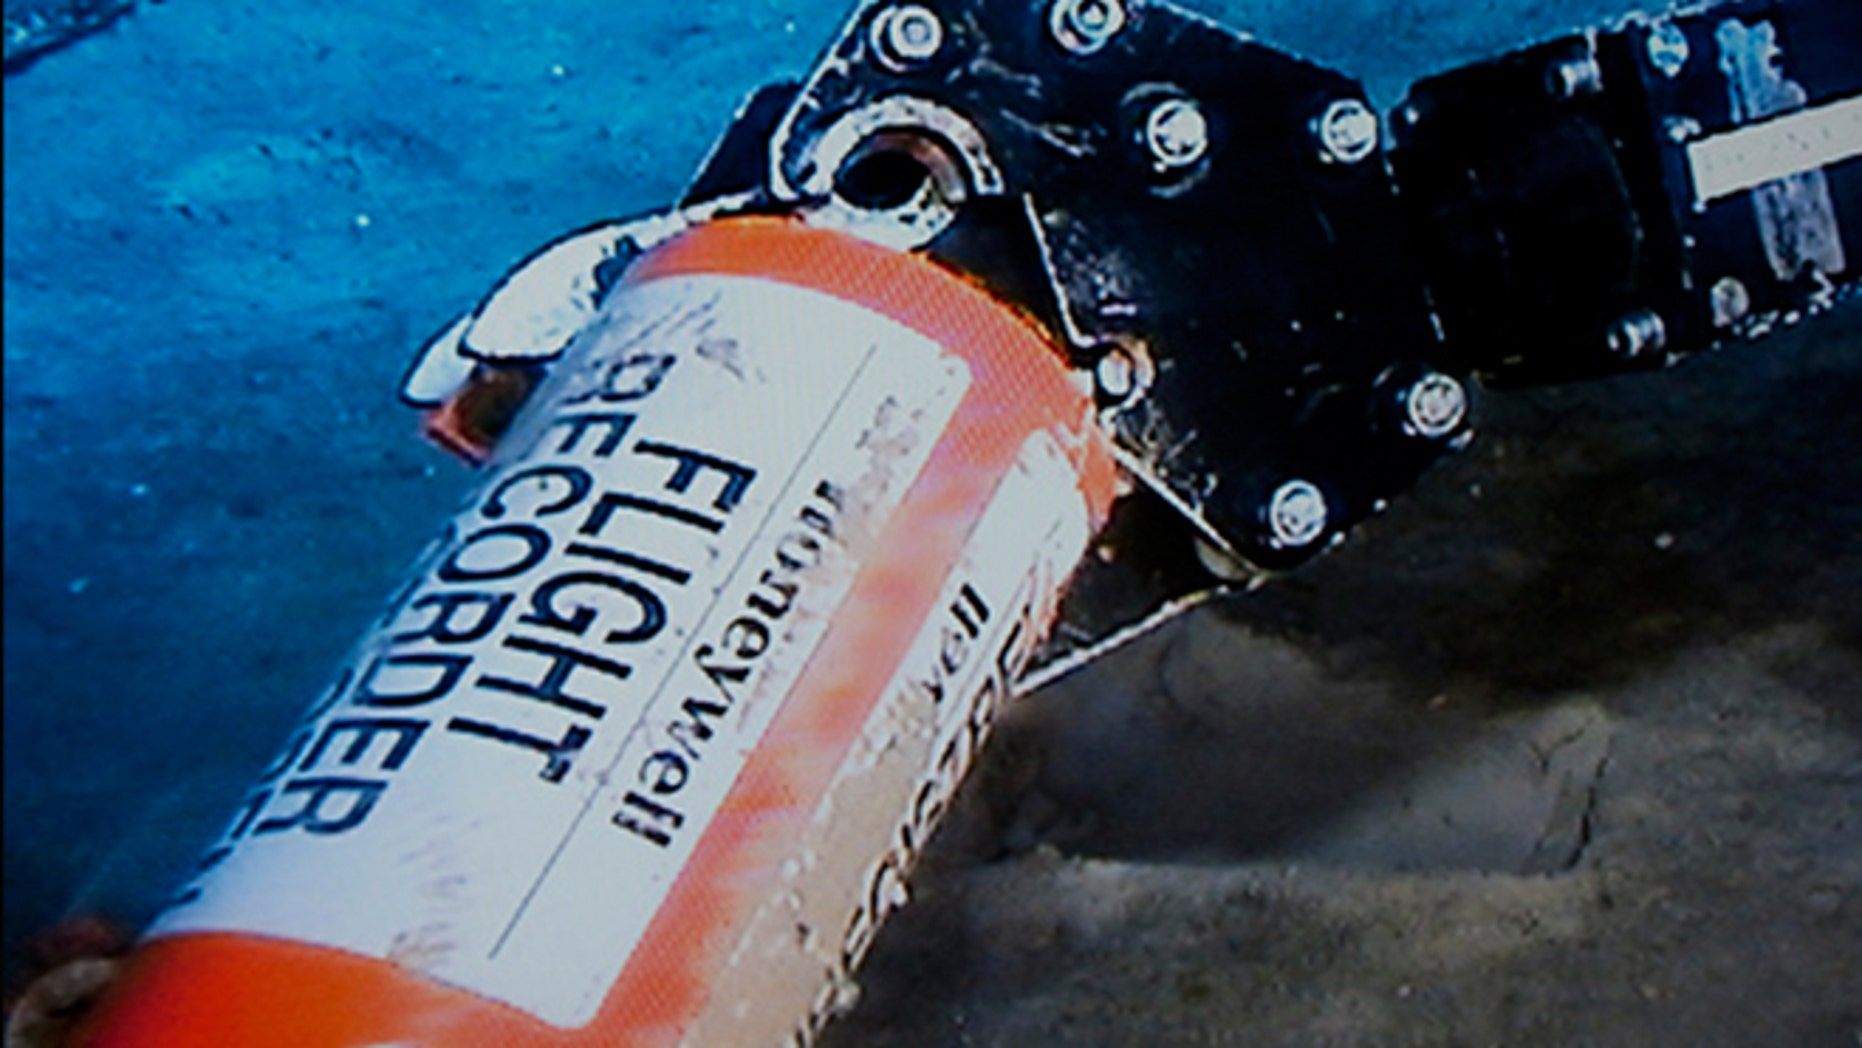 May 1, 2011: A mechanical arm, seen in this image published on the web site of France's BEA air accident inquiry offic, holds an orange cylindrical flight data recorder above the sand.